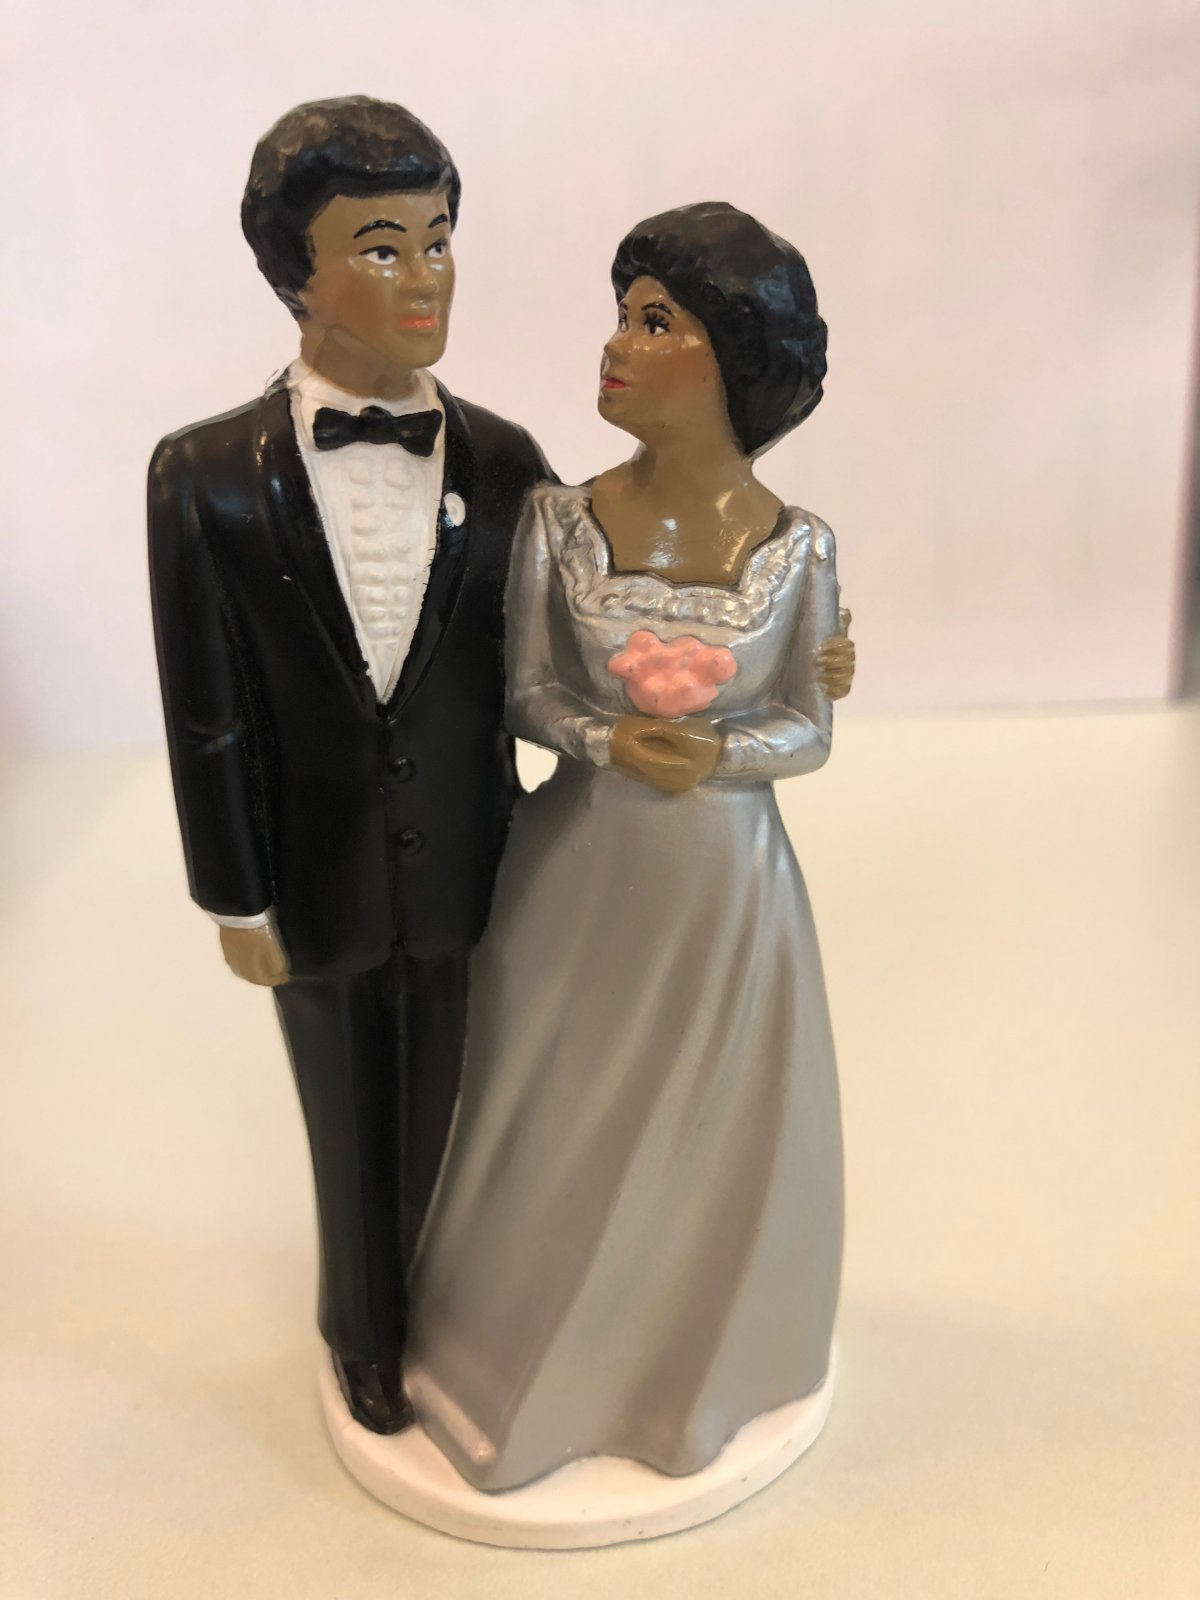 25th Anniversary African American Couple Cake Topper